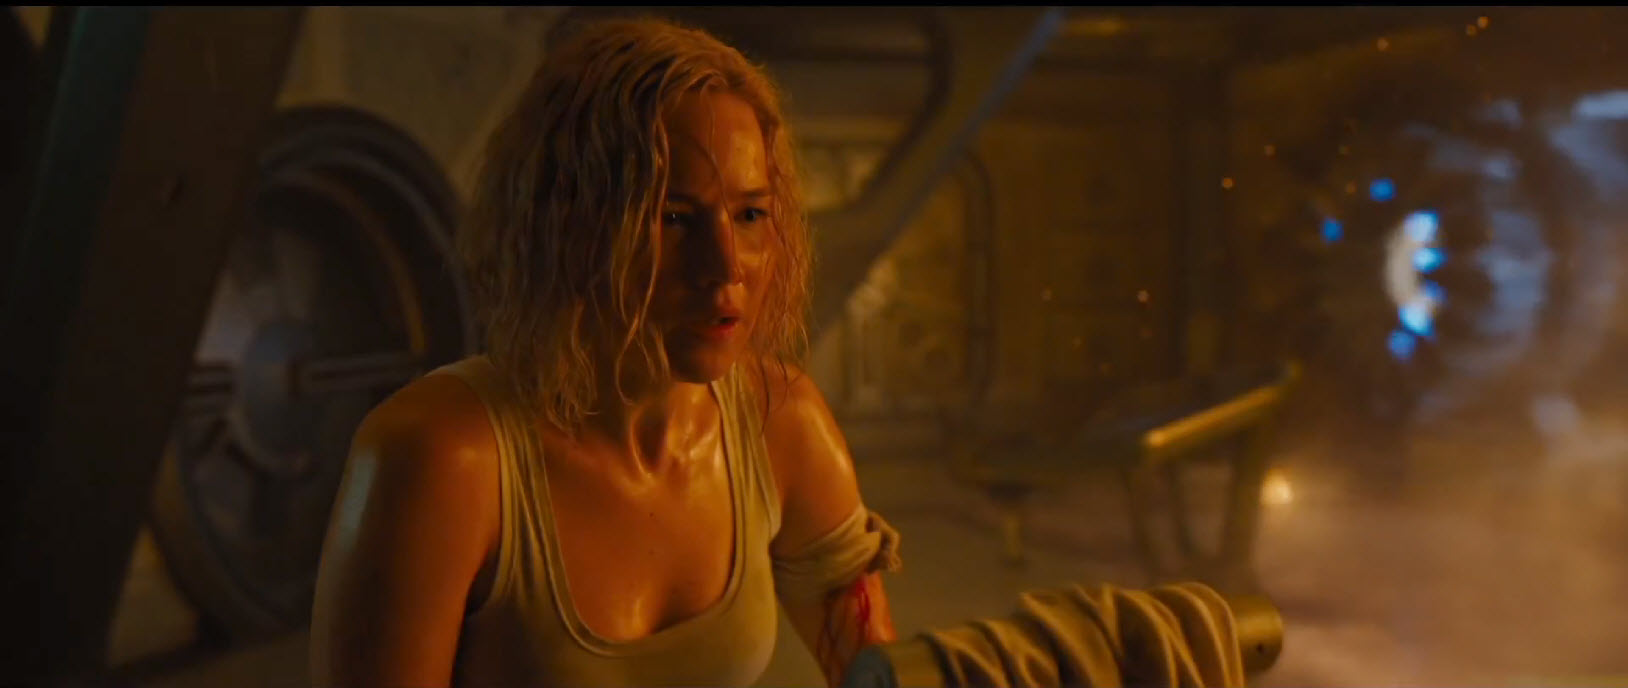 'Passengers' trailer lands along with new Chris Pratt, Jennifer Lawrence images 2016 images